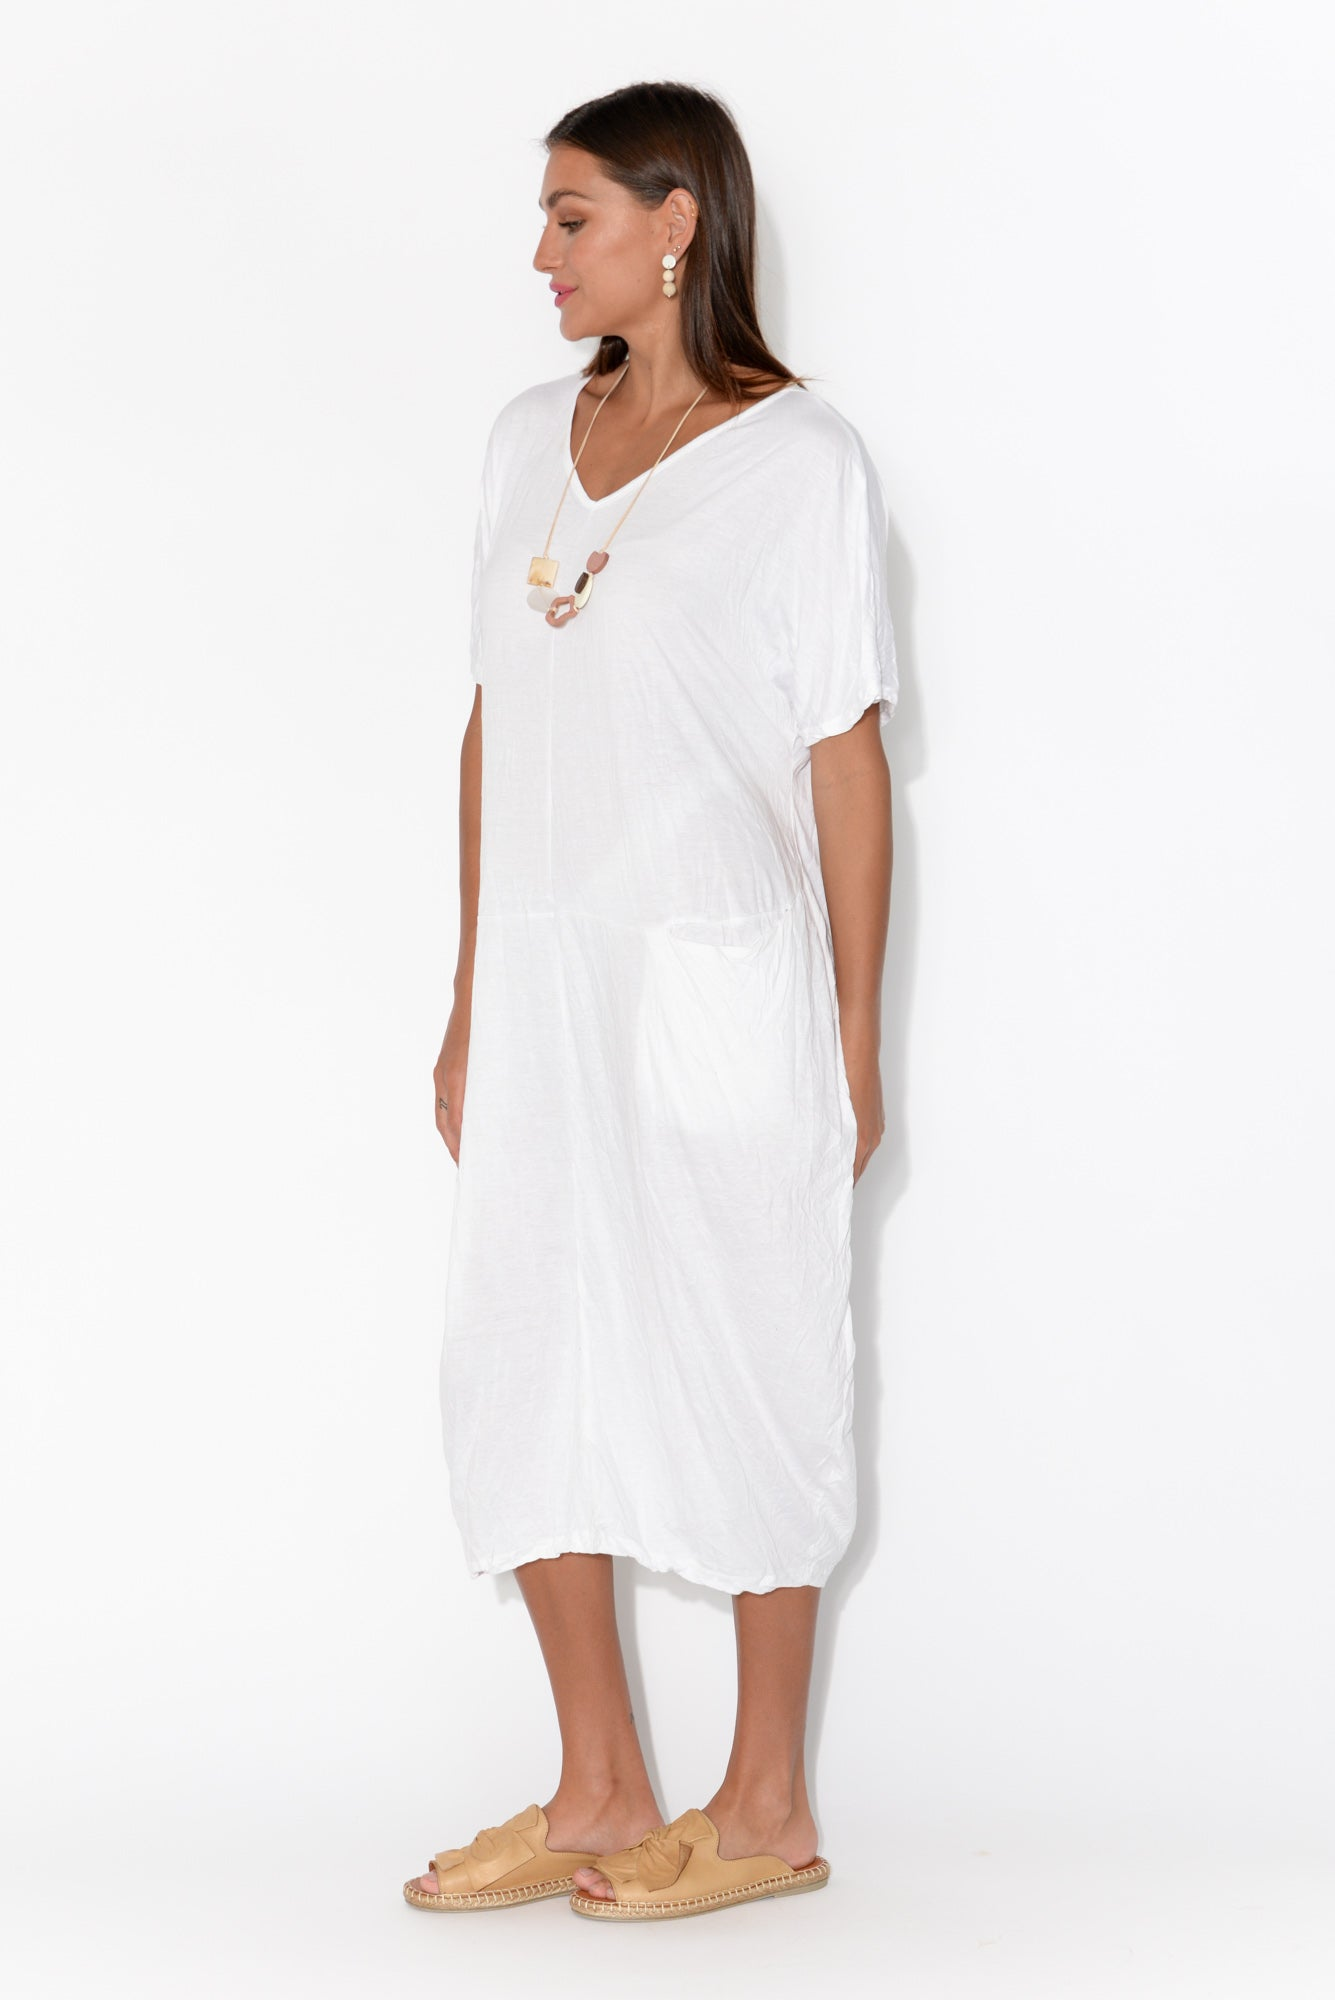 Payton White Cotton Pocket Dress